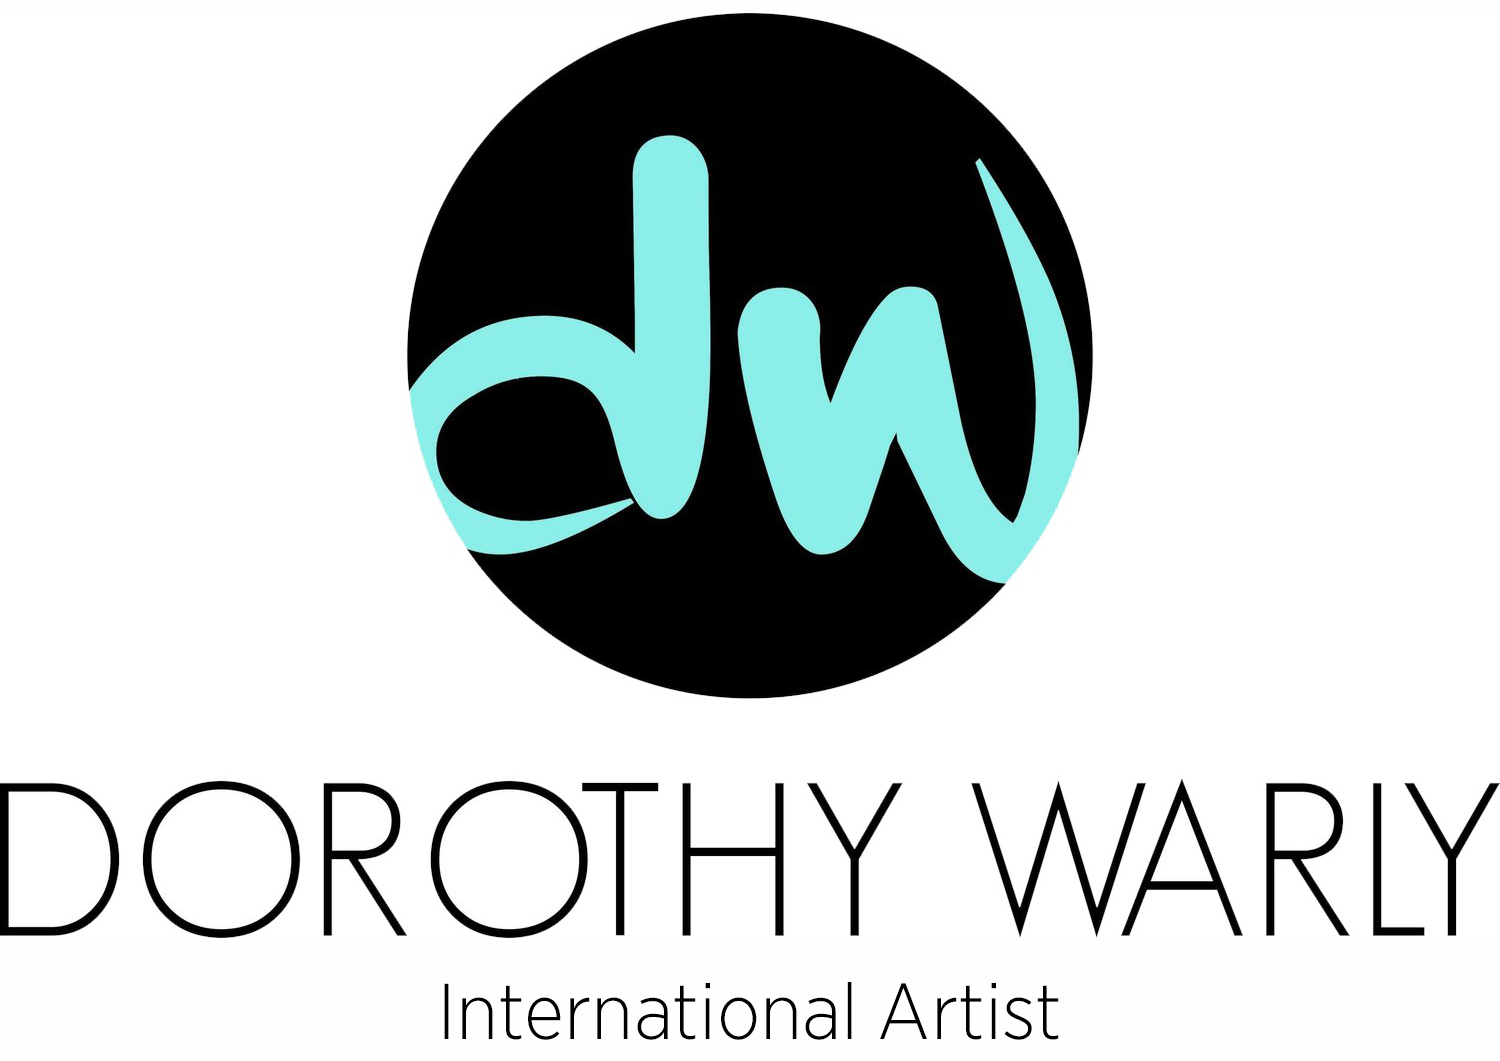 Dorothy Warly International Artist